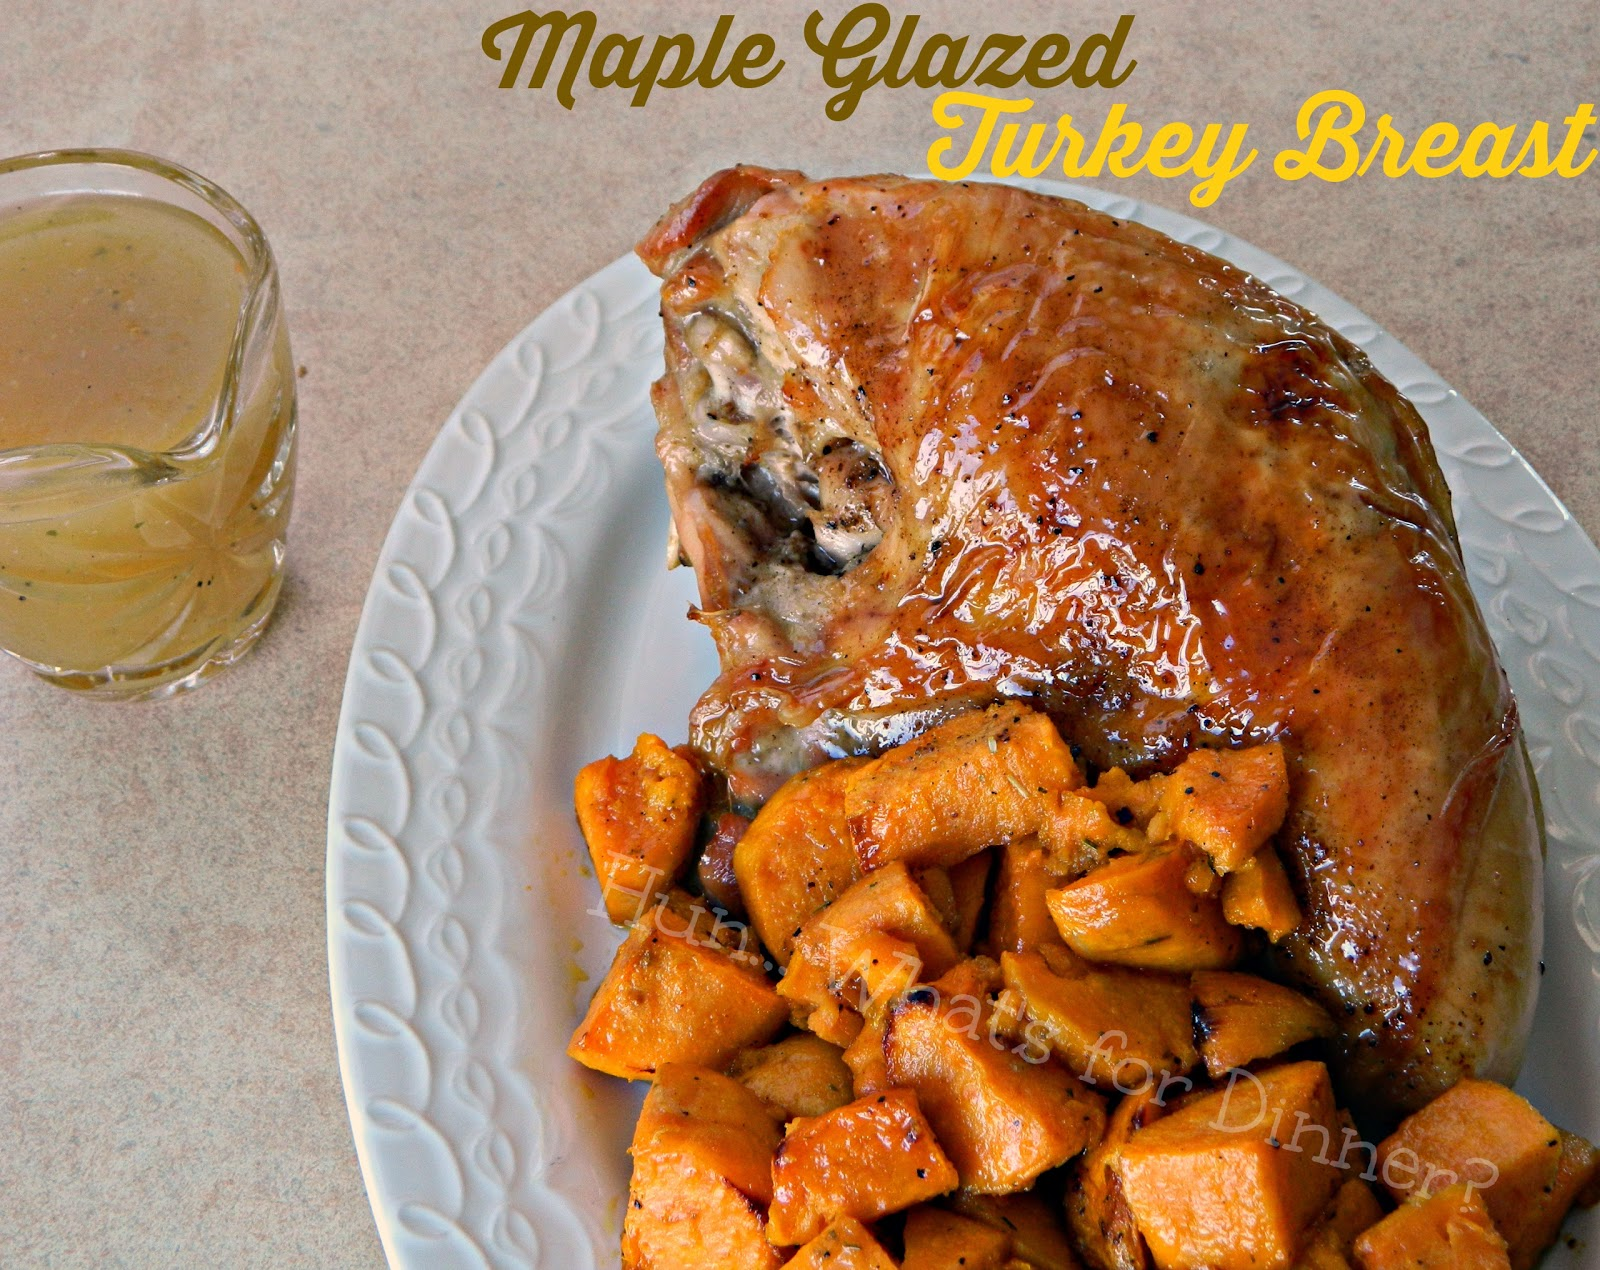 Hun... What's for Dinner?: Maple Glazed Turkey Breast- A gorgeous roast turkey breast, basted with maple syrup. Perfect for Easter, or any special holiday.